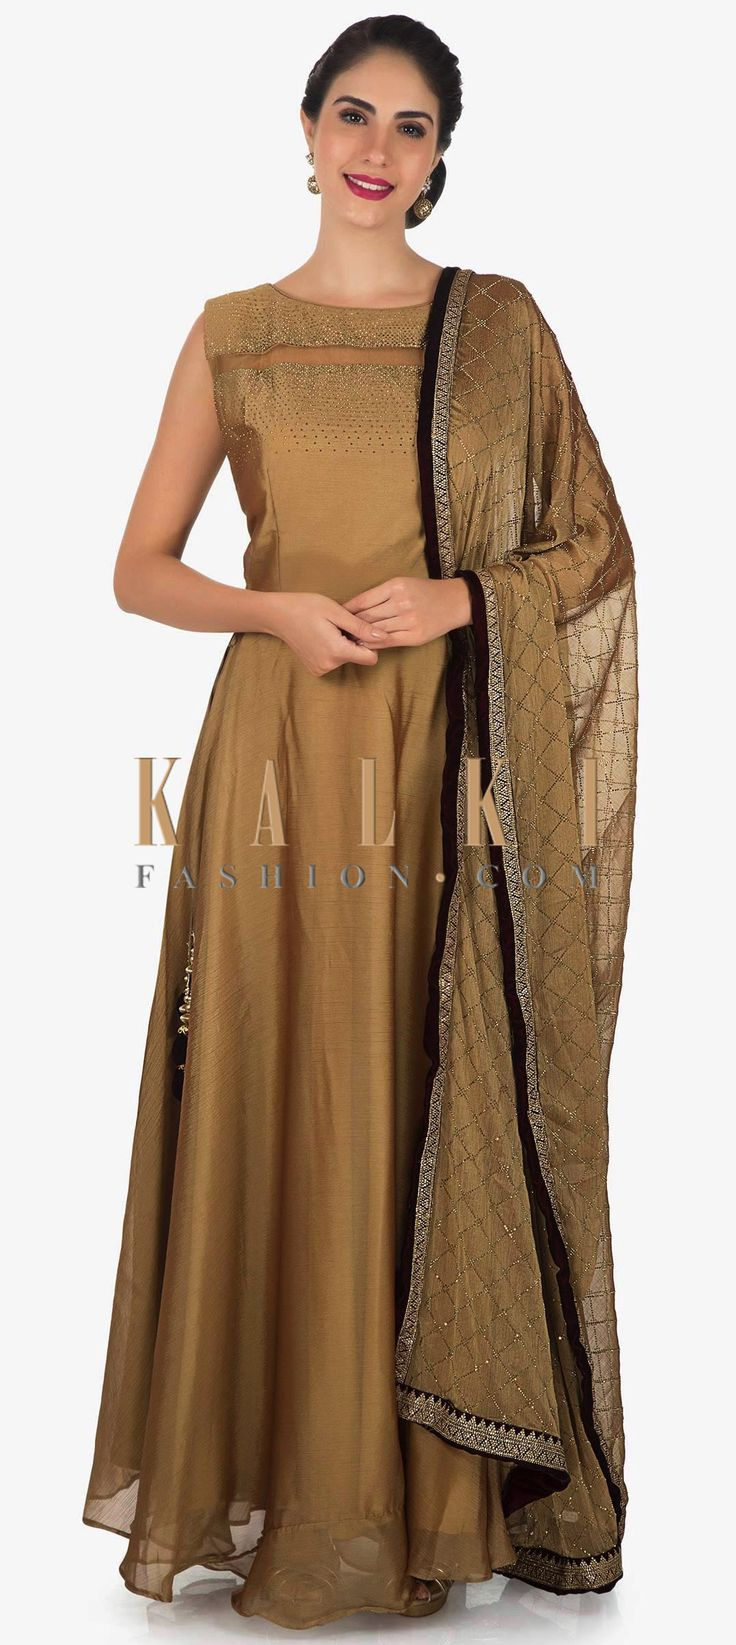 Buy Online from the link below. We ship worldwide Click Anywhere to Tag Brown anarkali suit in chiffon with yoke highlighted in sheer net and kundan only on Kalki  Brown anarkali suit featuring in chiffon. Yoke is embellished in kundan work along with sheer net. It comes with boat neckline and sleeveless. Matched with lycra churidar and dupatta in chiffon with wine velvet border. Slight variation in color is possible.